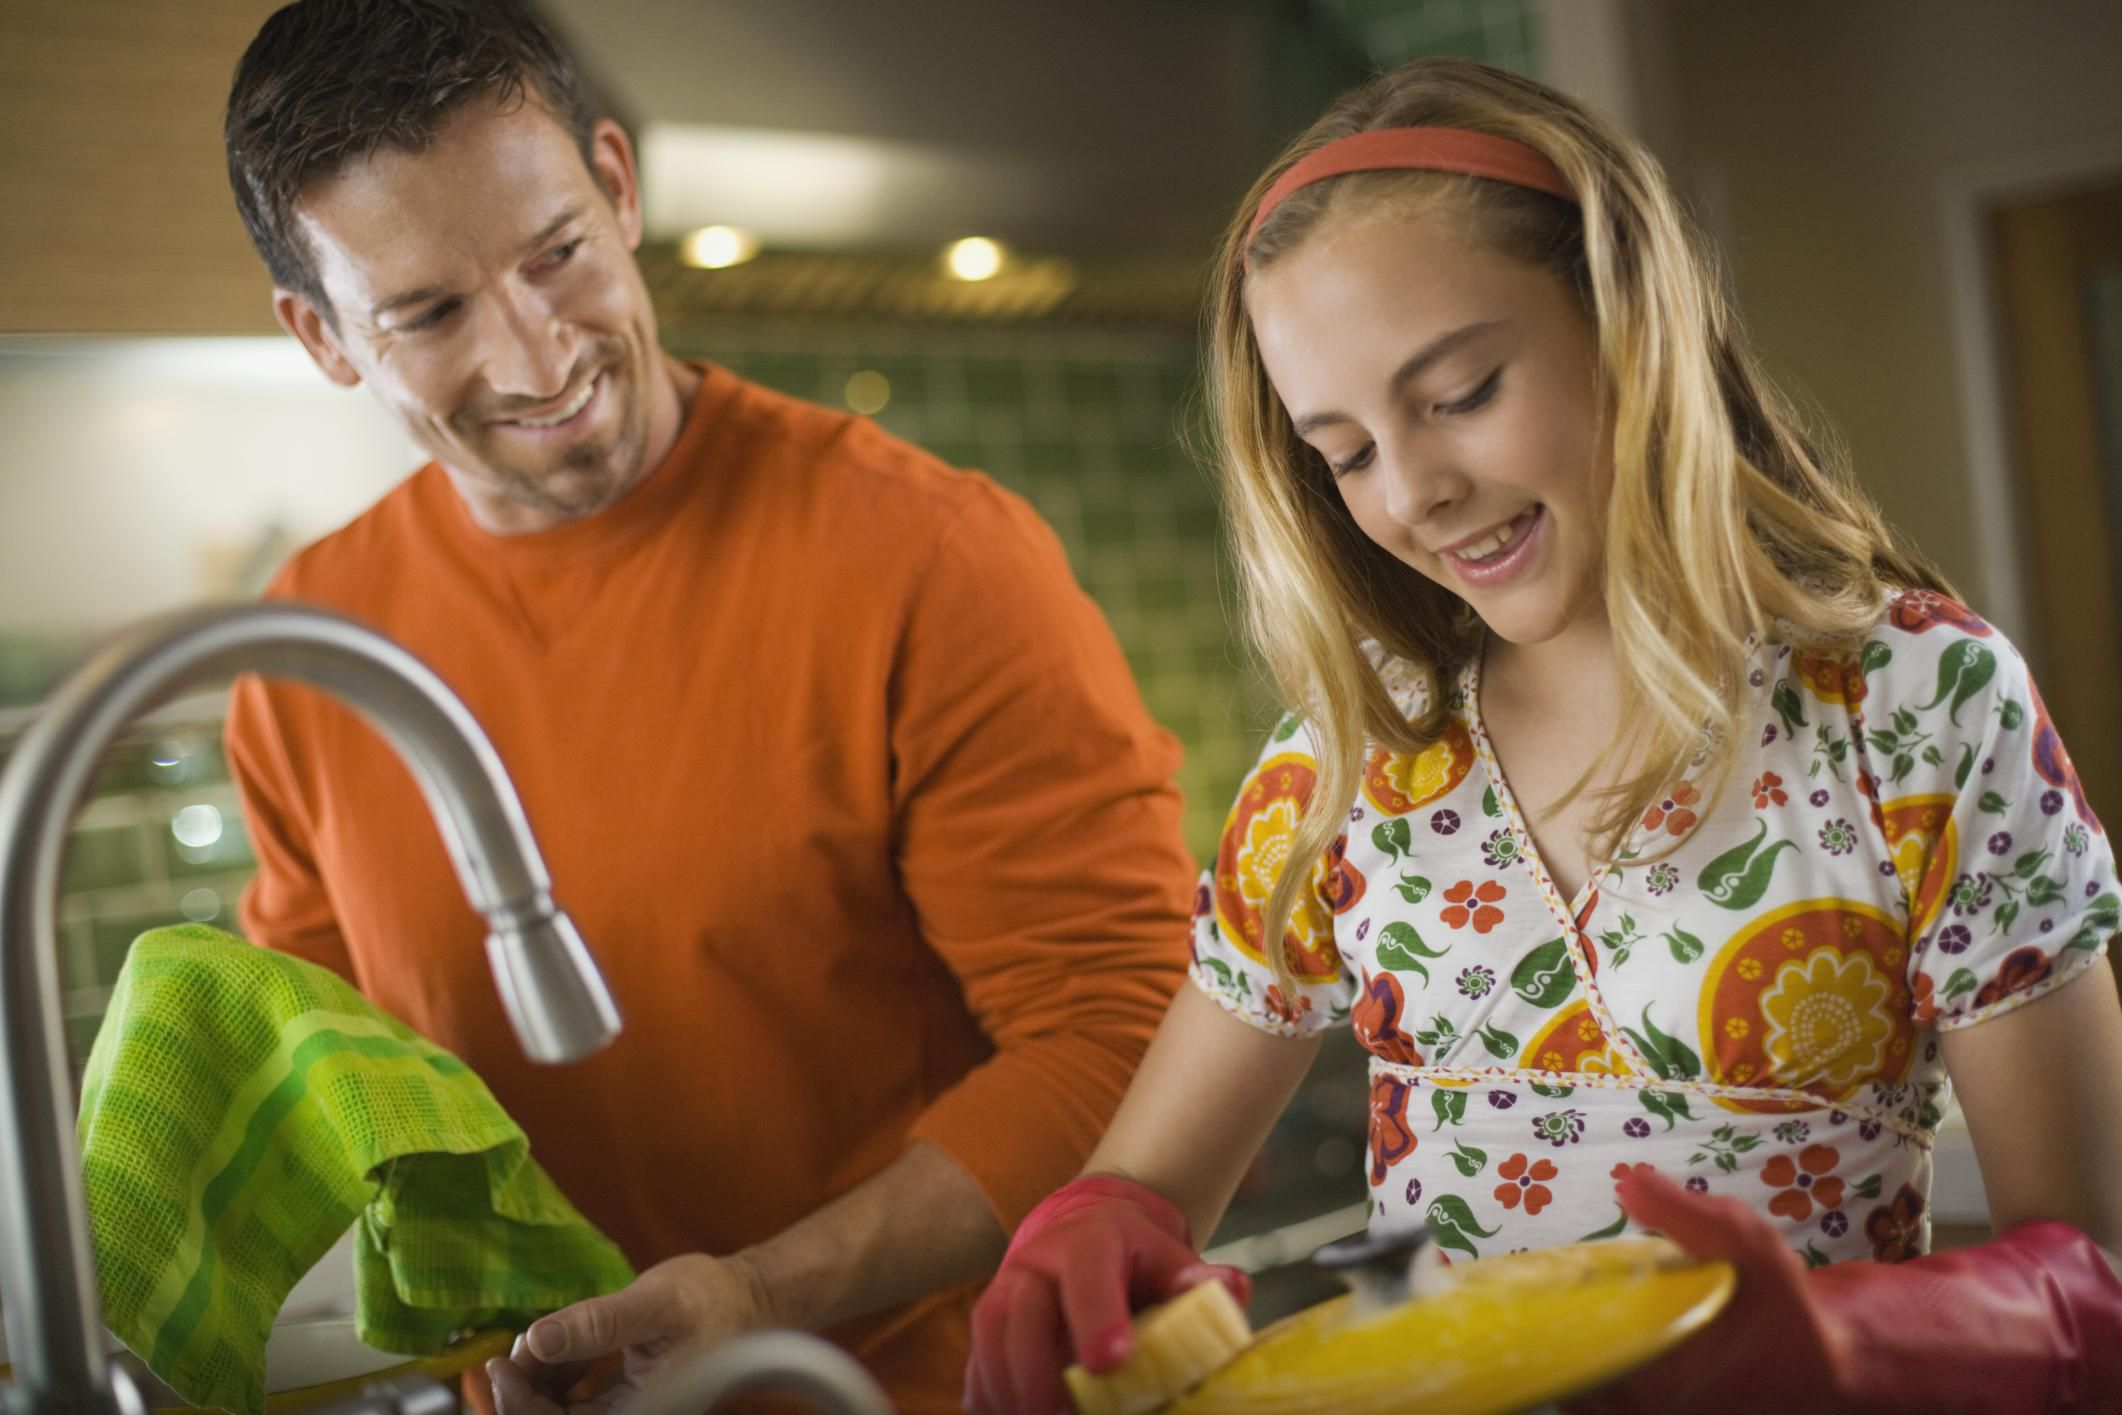 A Chores List For Older Kids And Teens